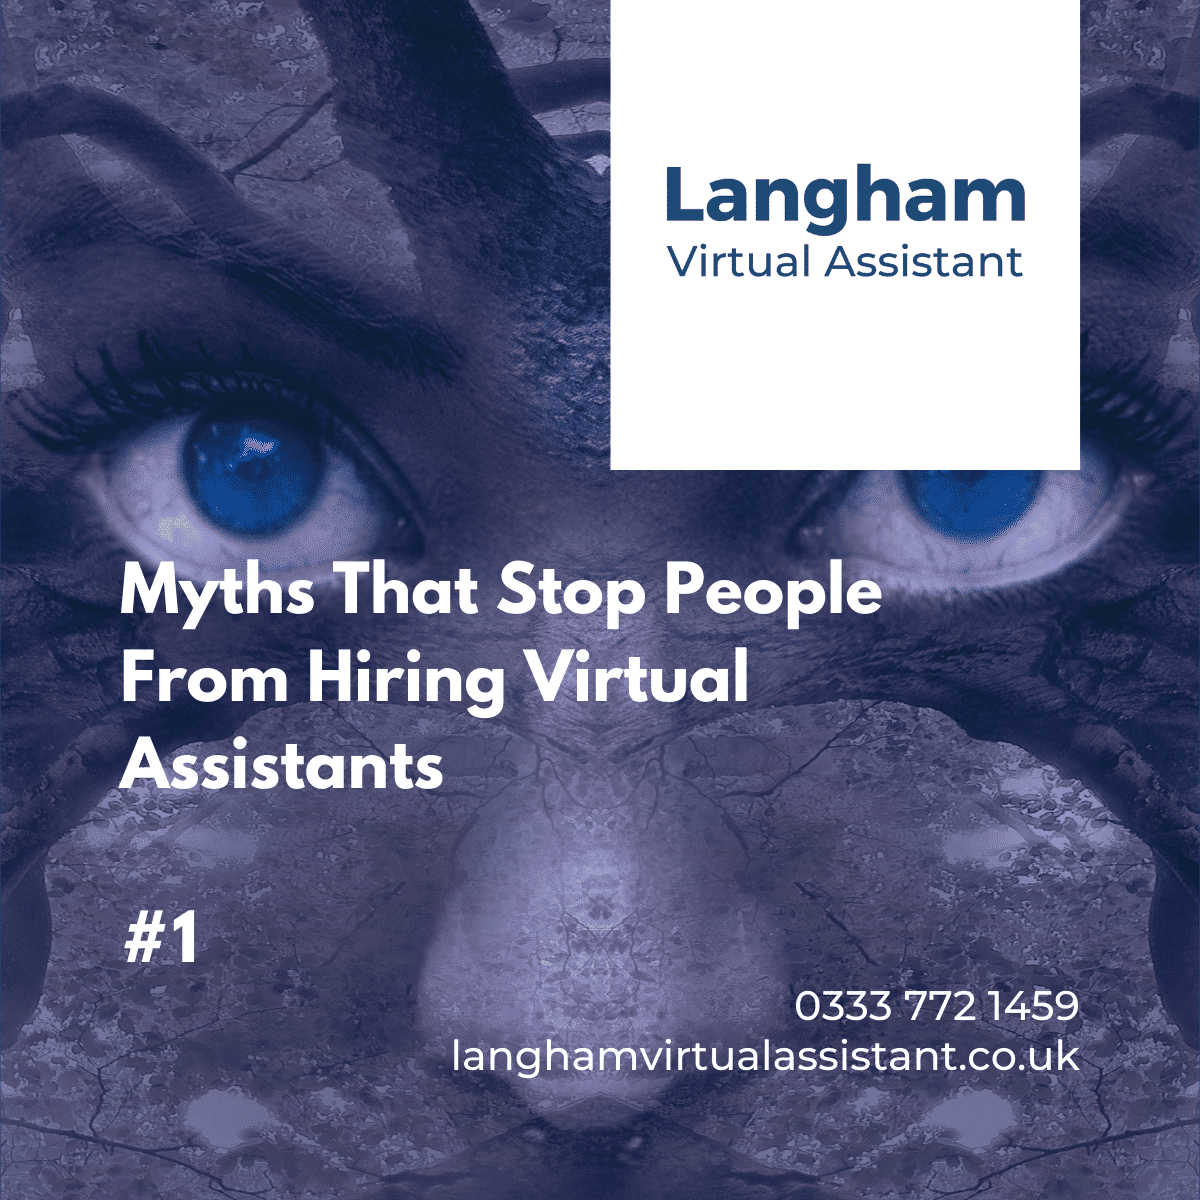 Myths That Stop People From Hiring Virtual Assistants #1